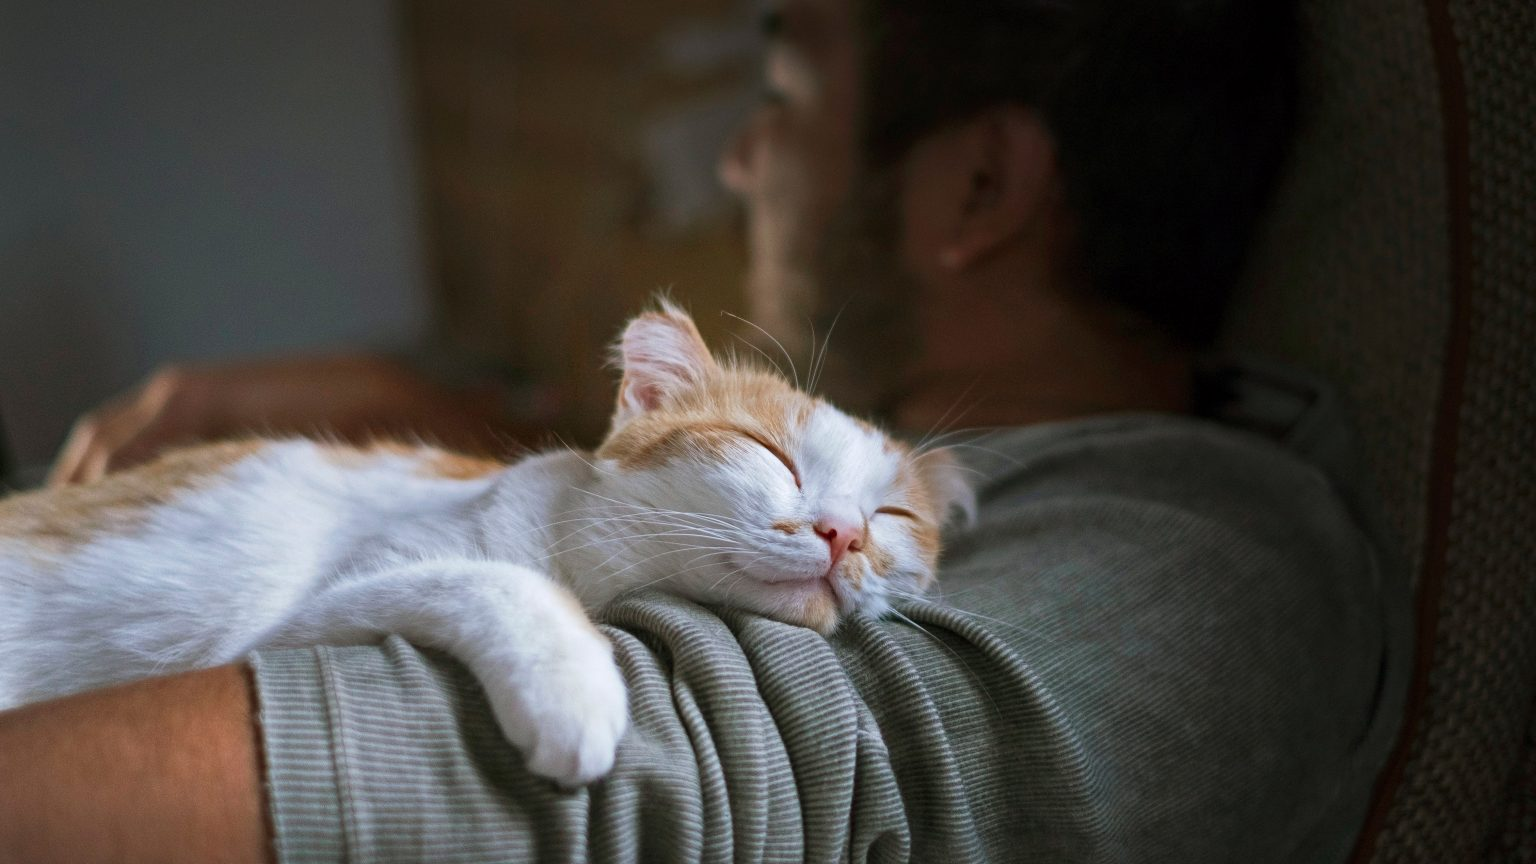 A cat sleeping on its owner